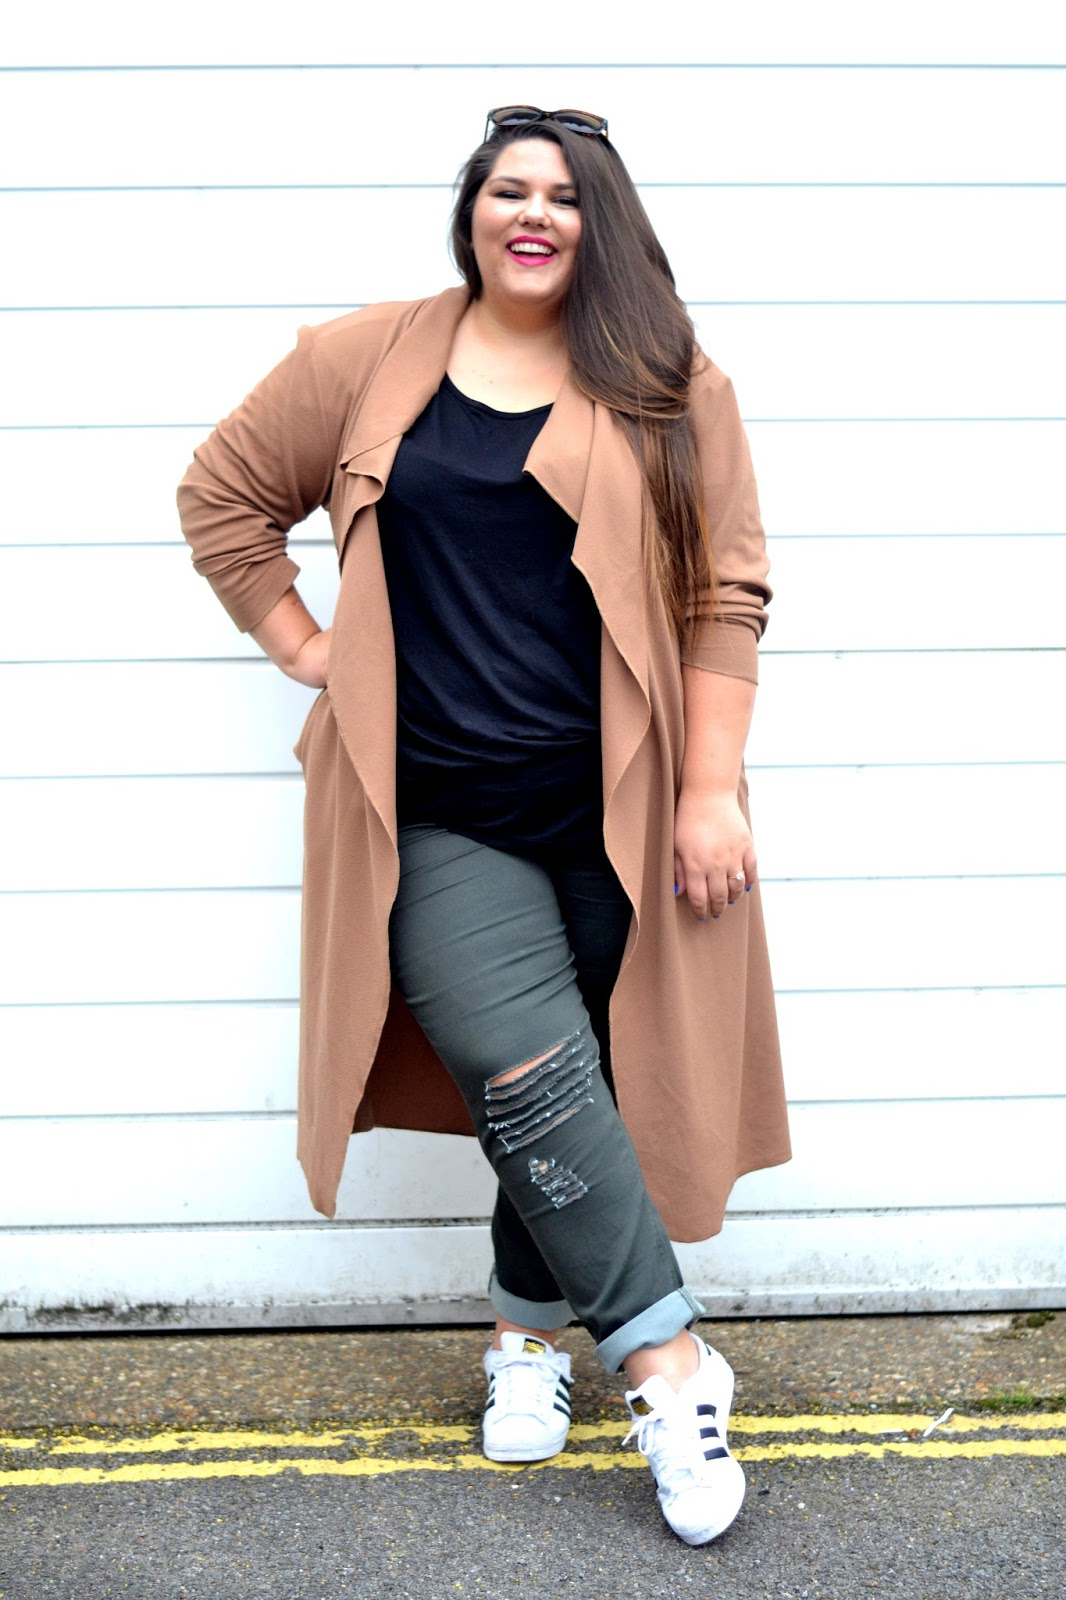 plus size clothing websites, 10 Affordable Plus Size Clothing Websites